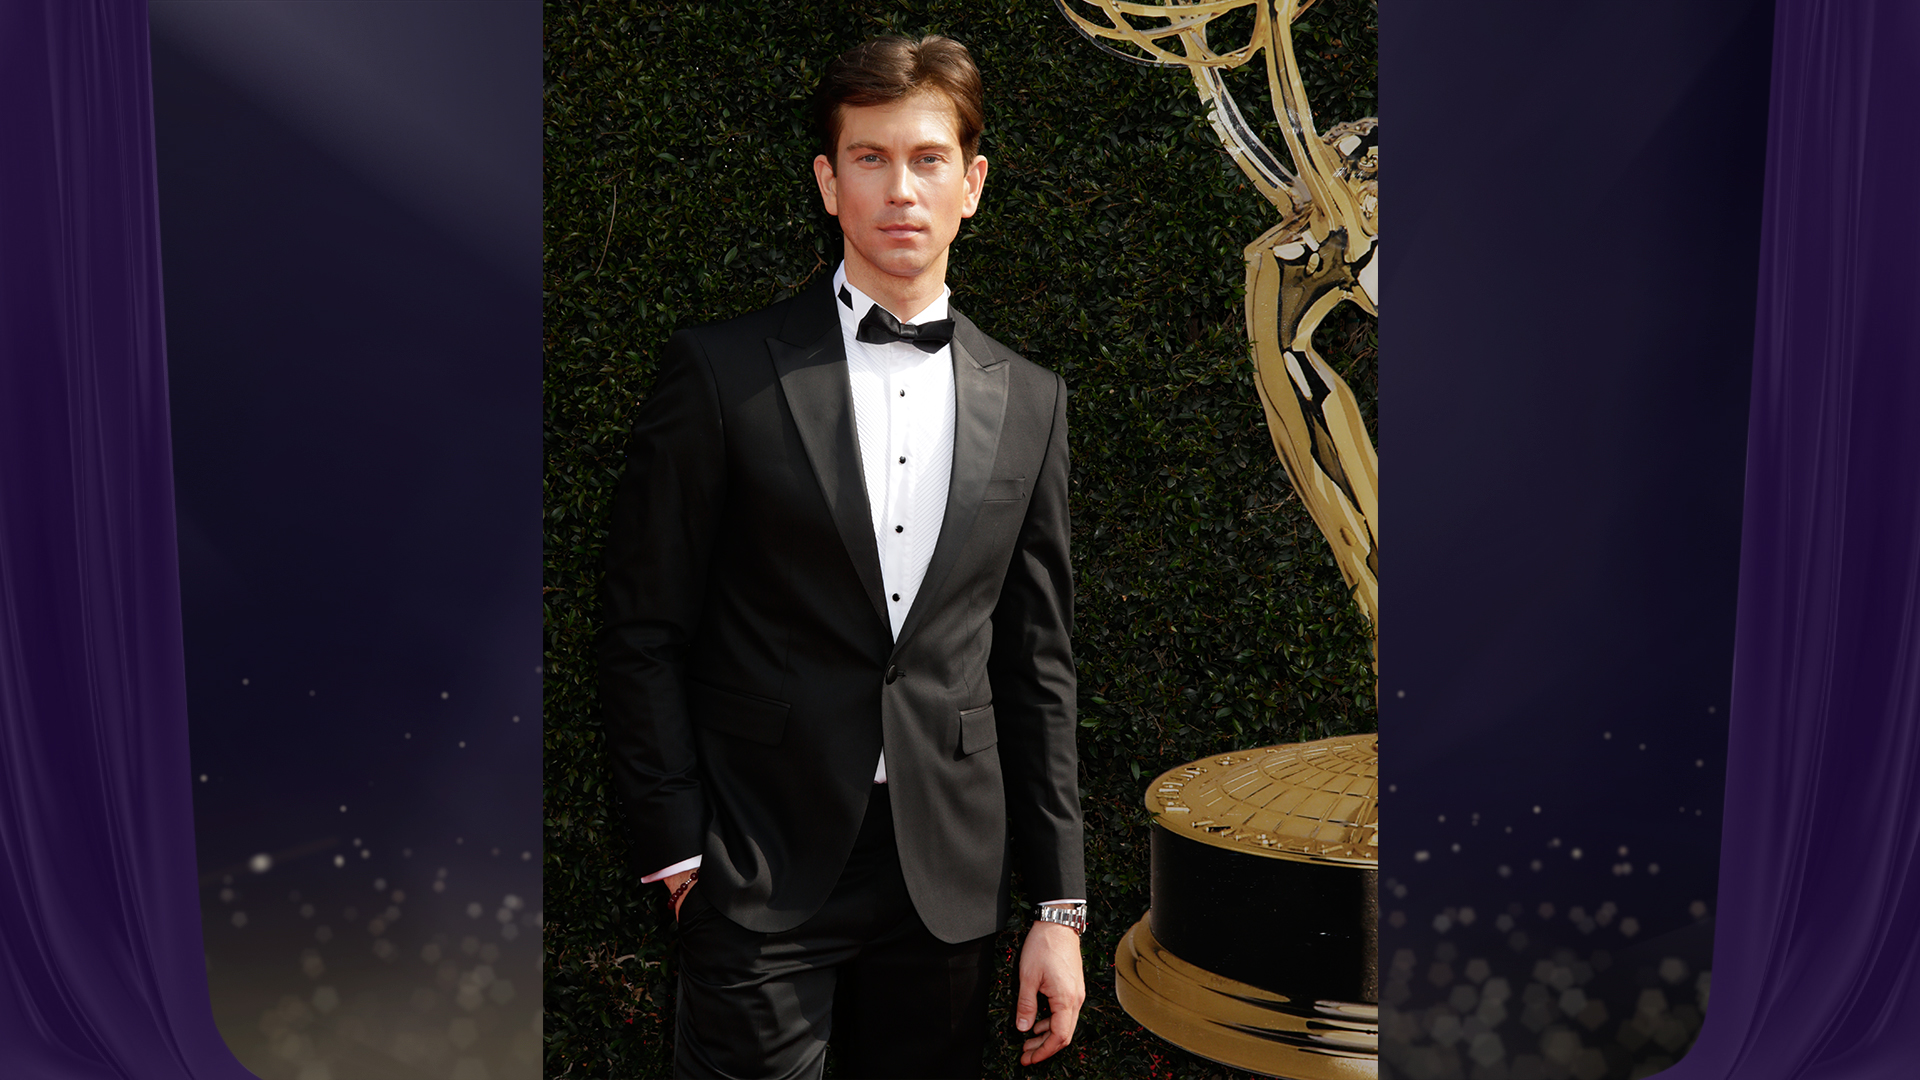 The Young and the Restless star Ryan Ashton, who's nominated for Outstanding Guest Performer in a Drama Series, sure knows how to smize.